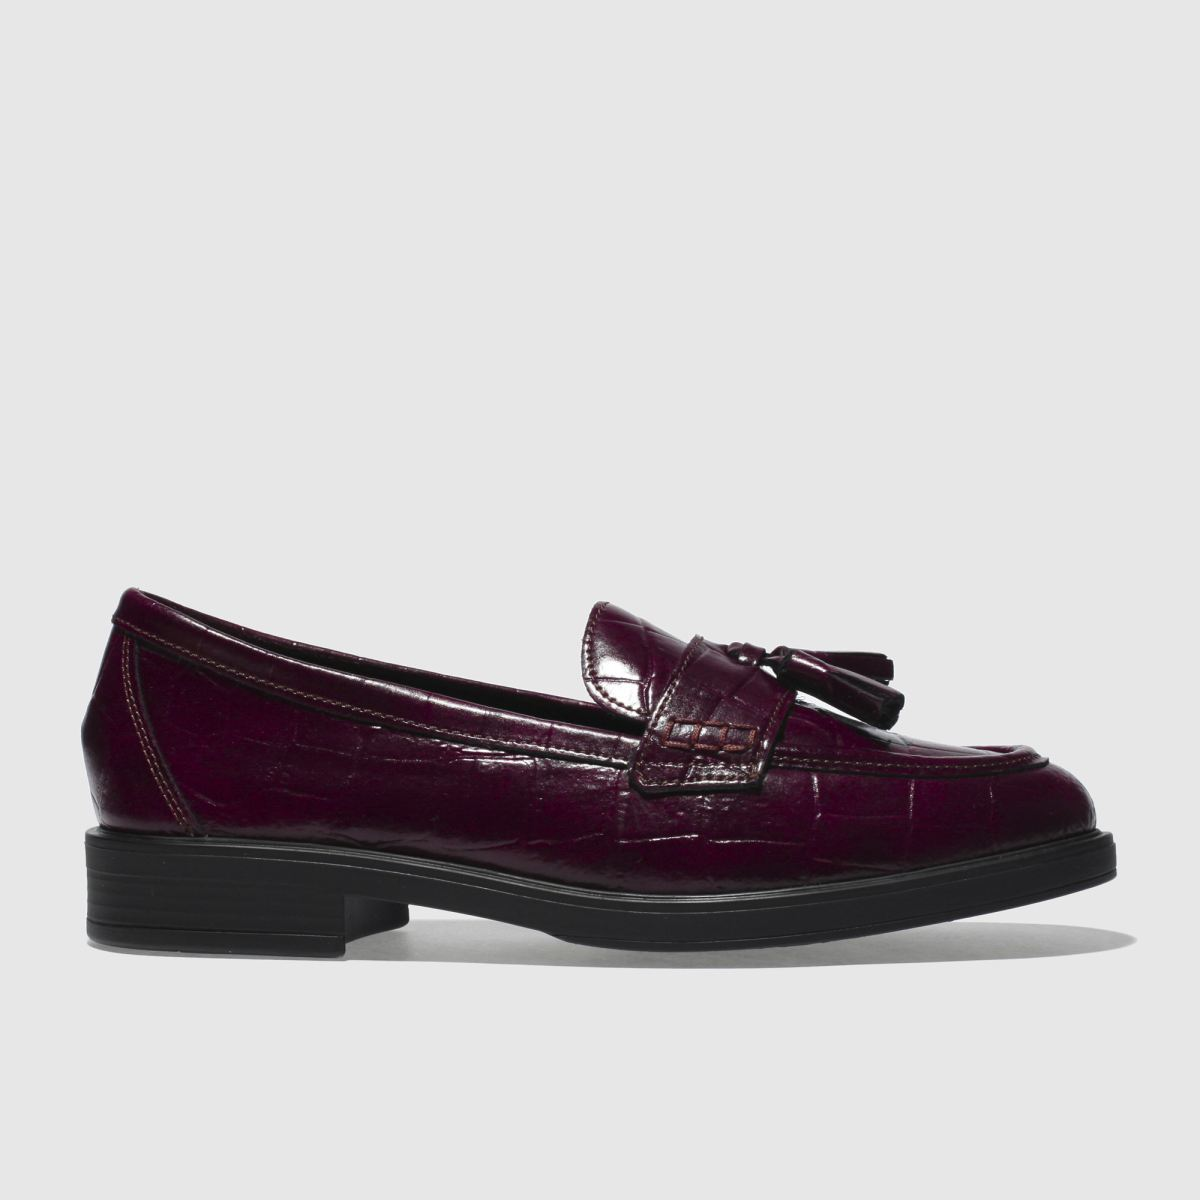 Schuh Burgundy Snappy Flat Shoes